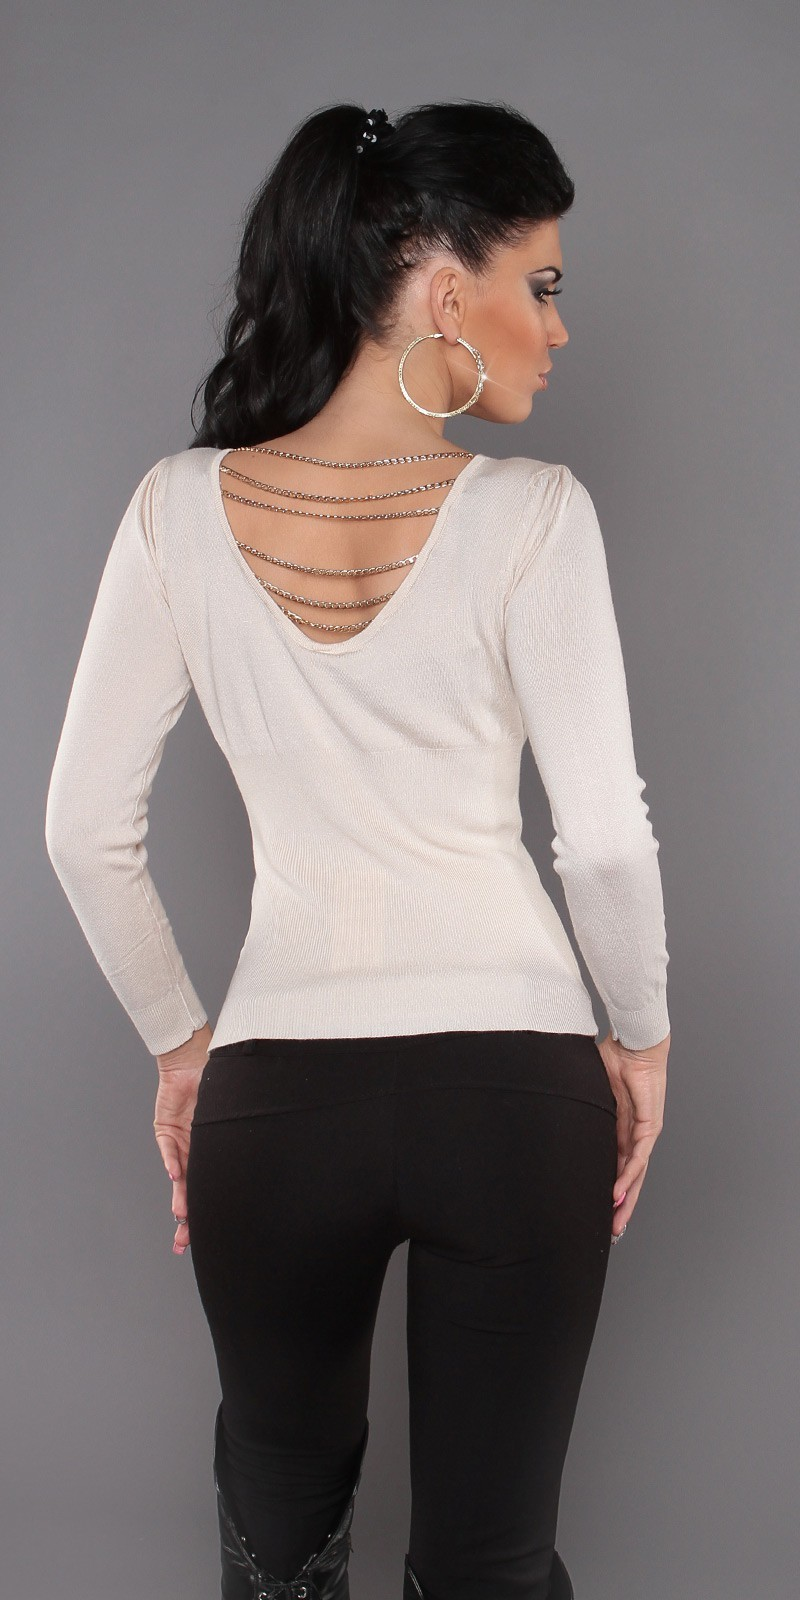 Sexy sweater with chains S-7308PC - Feel The Fashion. Γυναικεία και Ανδρική  μόδα 265688395a1